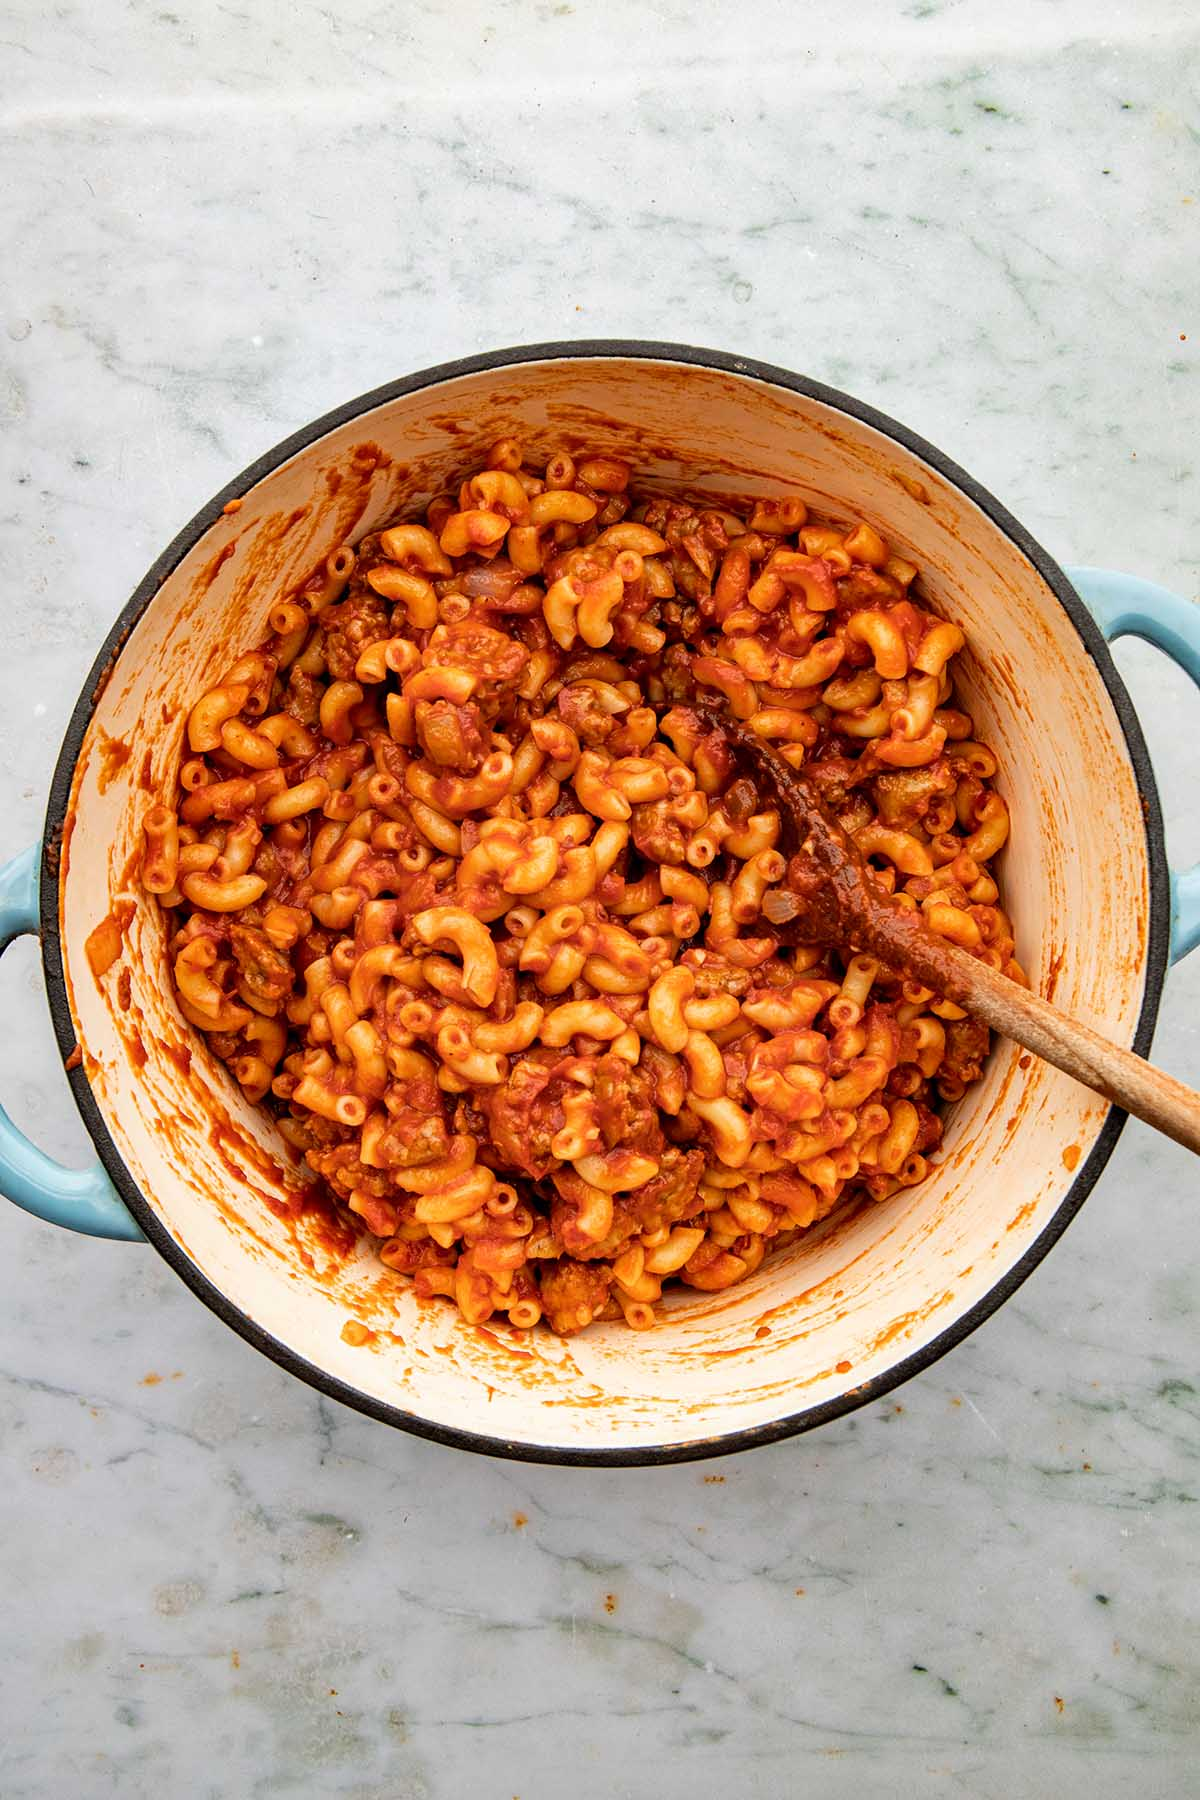 A pot of cooked macaroni and tomato sauce with a wooden spoon in the pot.